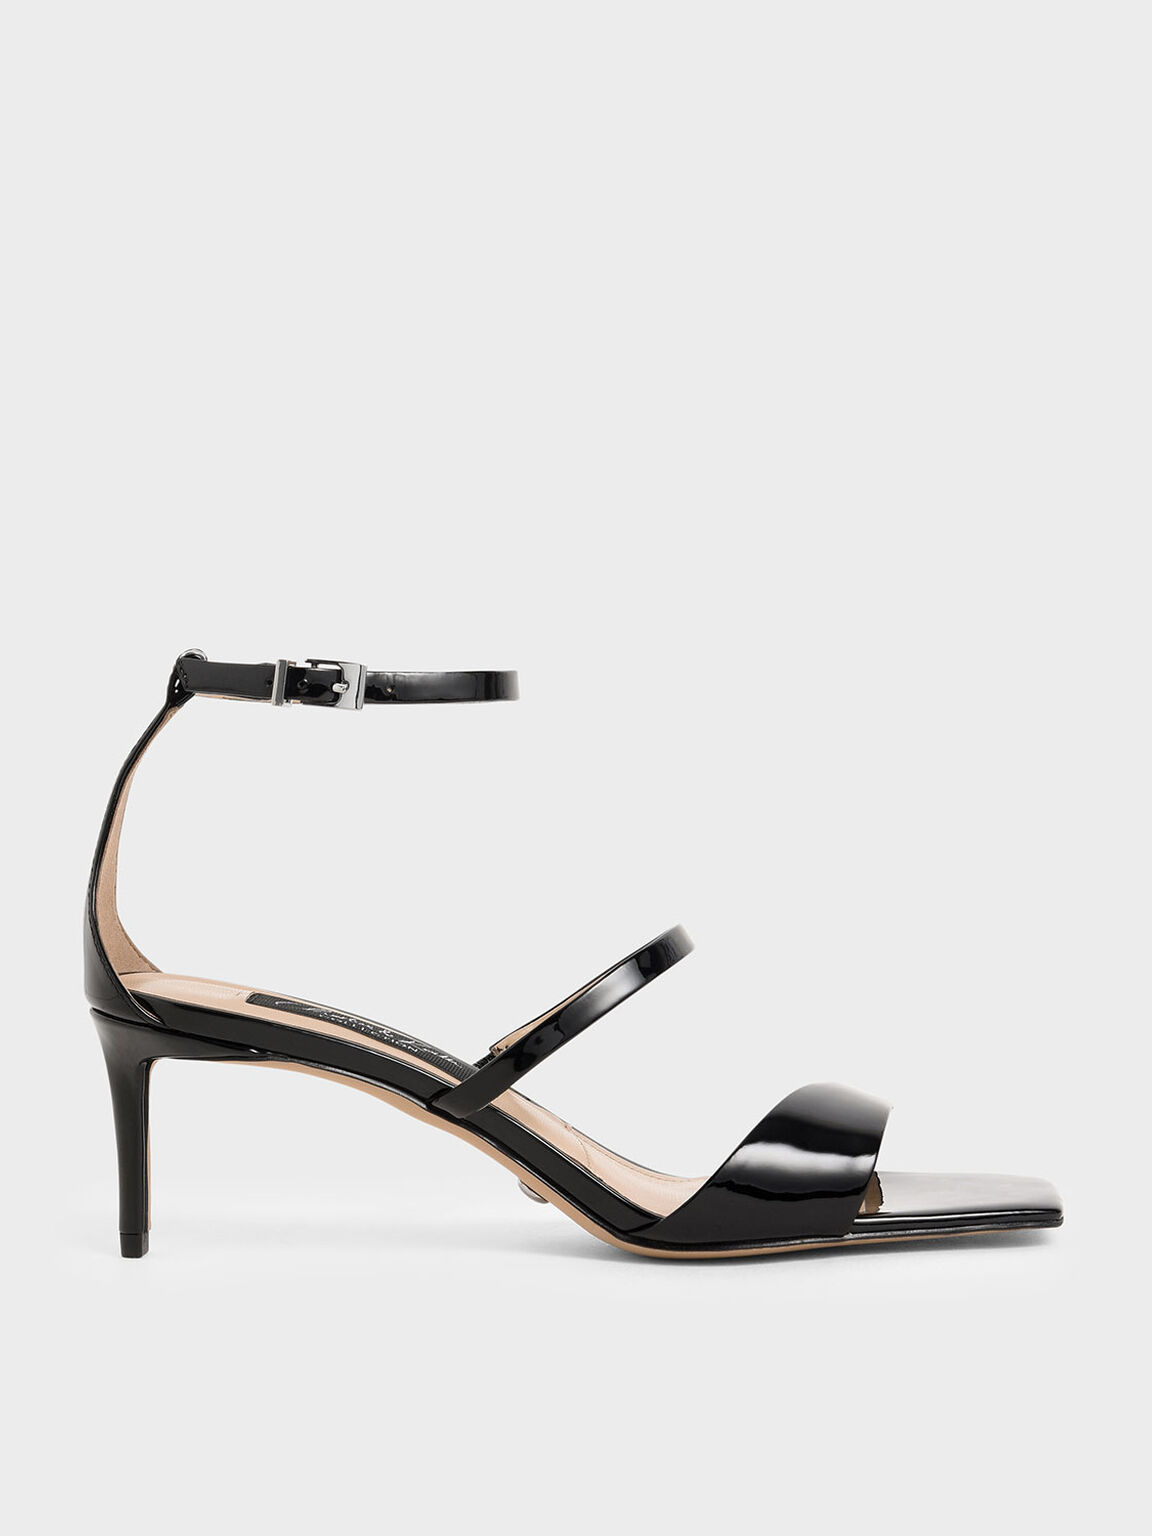 Patent Leather Strappy Heeled Sandals, Black, hi-res